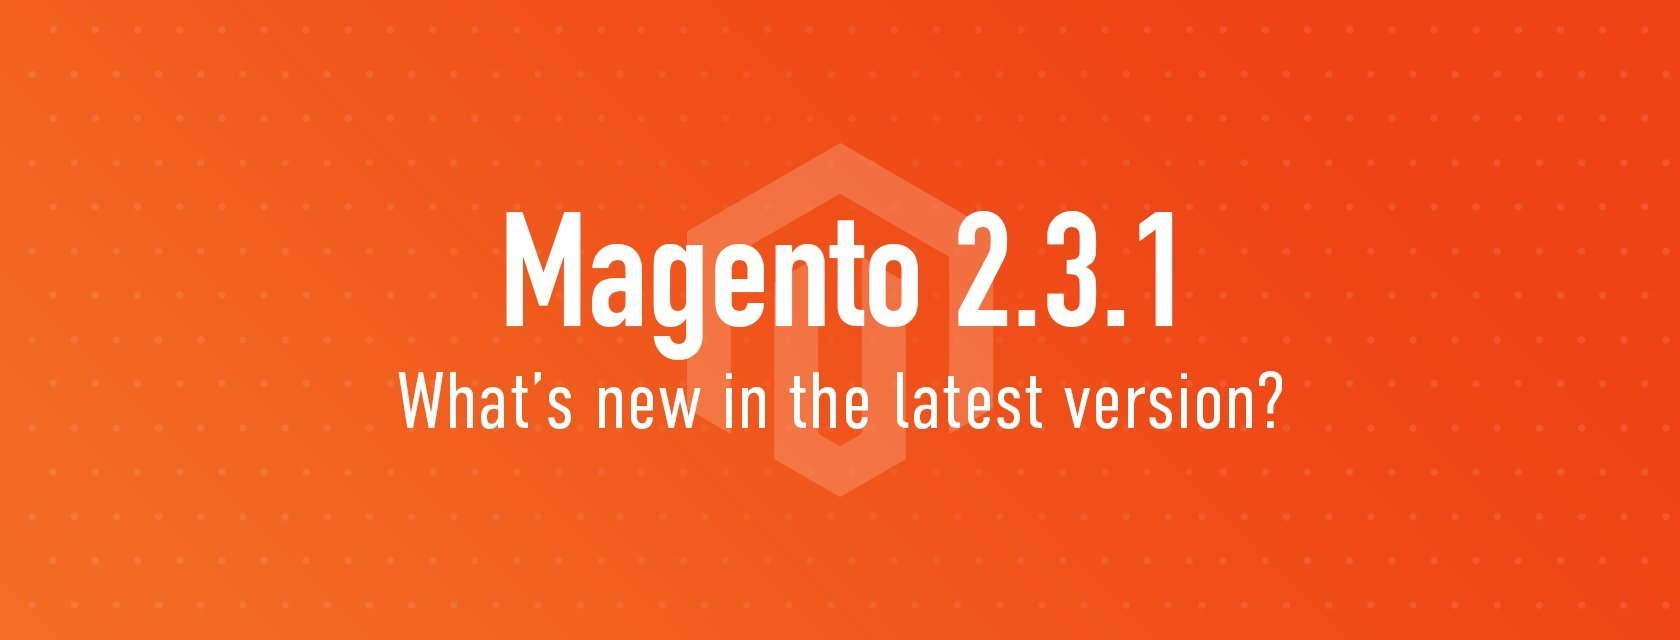 Highlights from Magento 2.3.1 release notes – Updates, and New Features